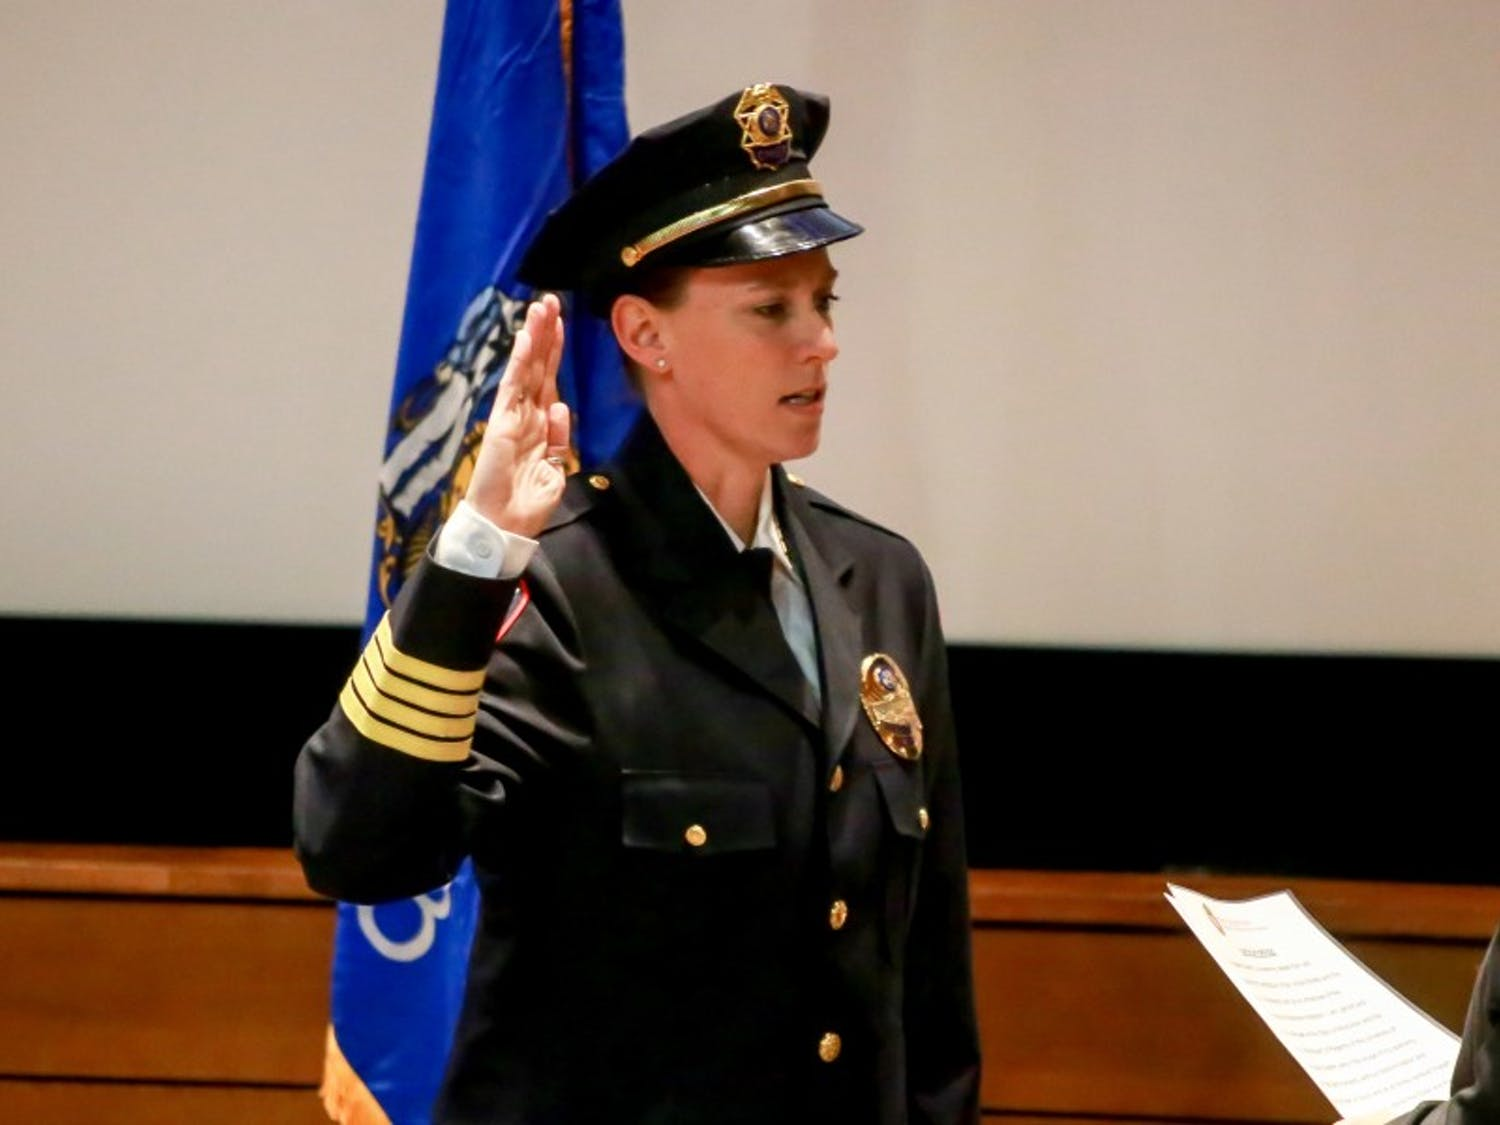 UW-Madison Police Department Chief Kristen Roman formally accepted her title at a swear-in ceremony Wednesday.